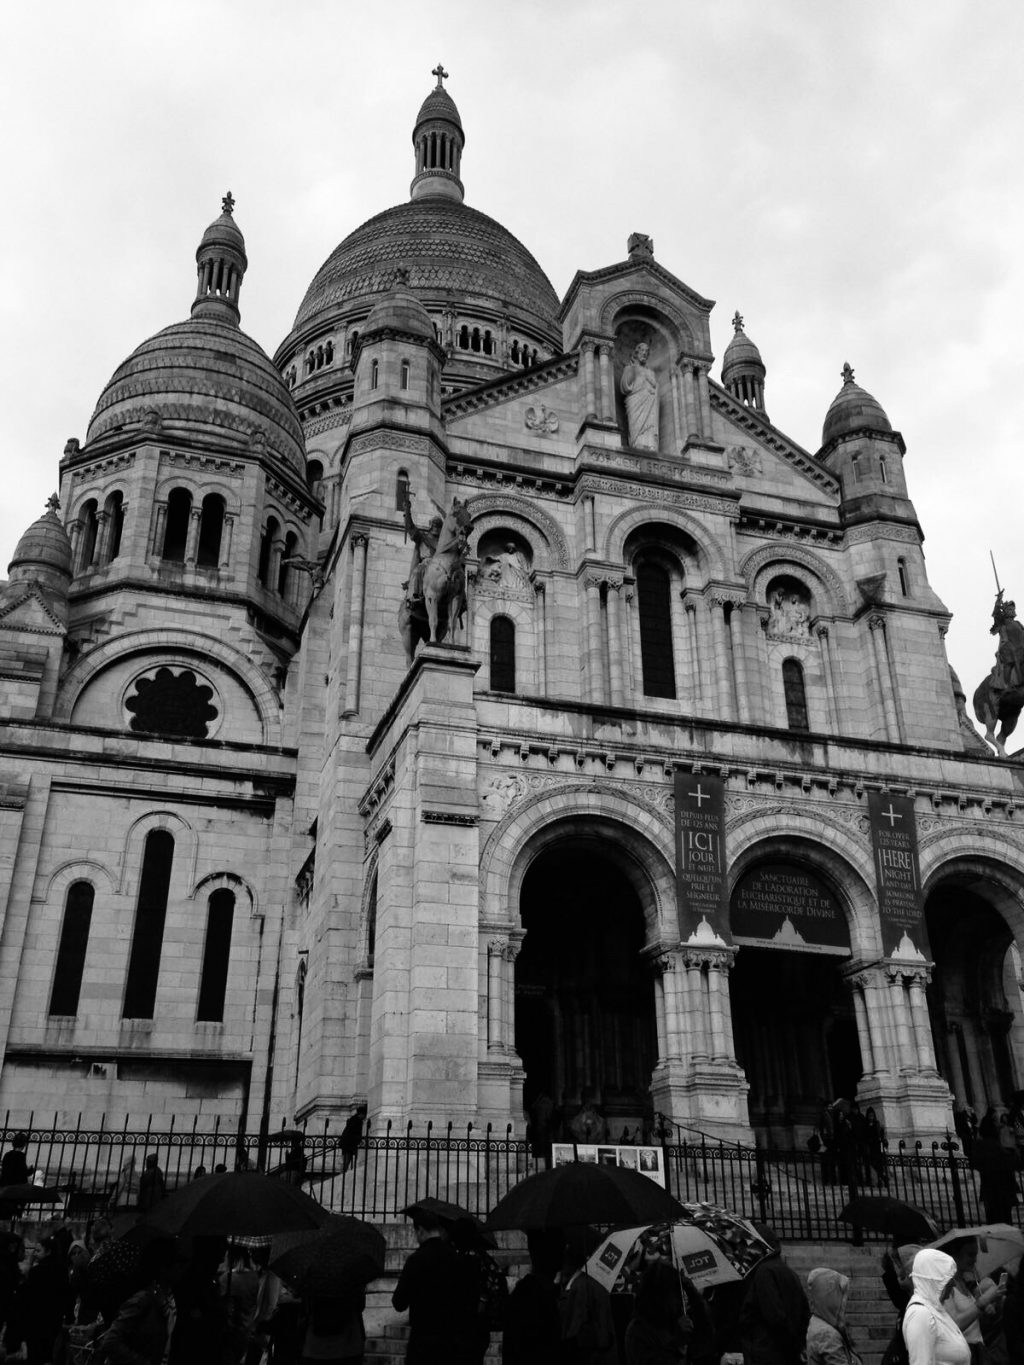 Black and white photo of the Sacre-Coeur in Paris